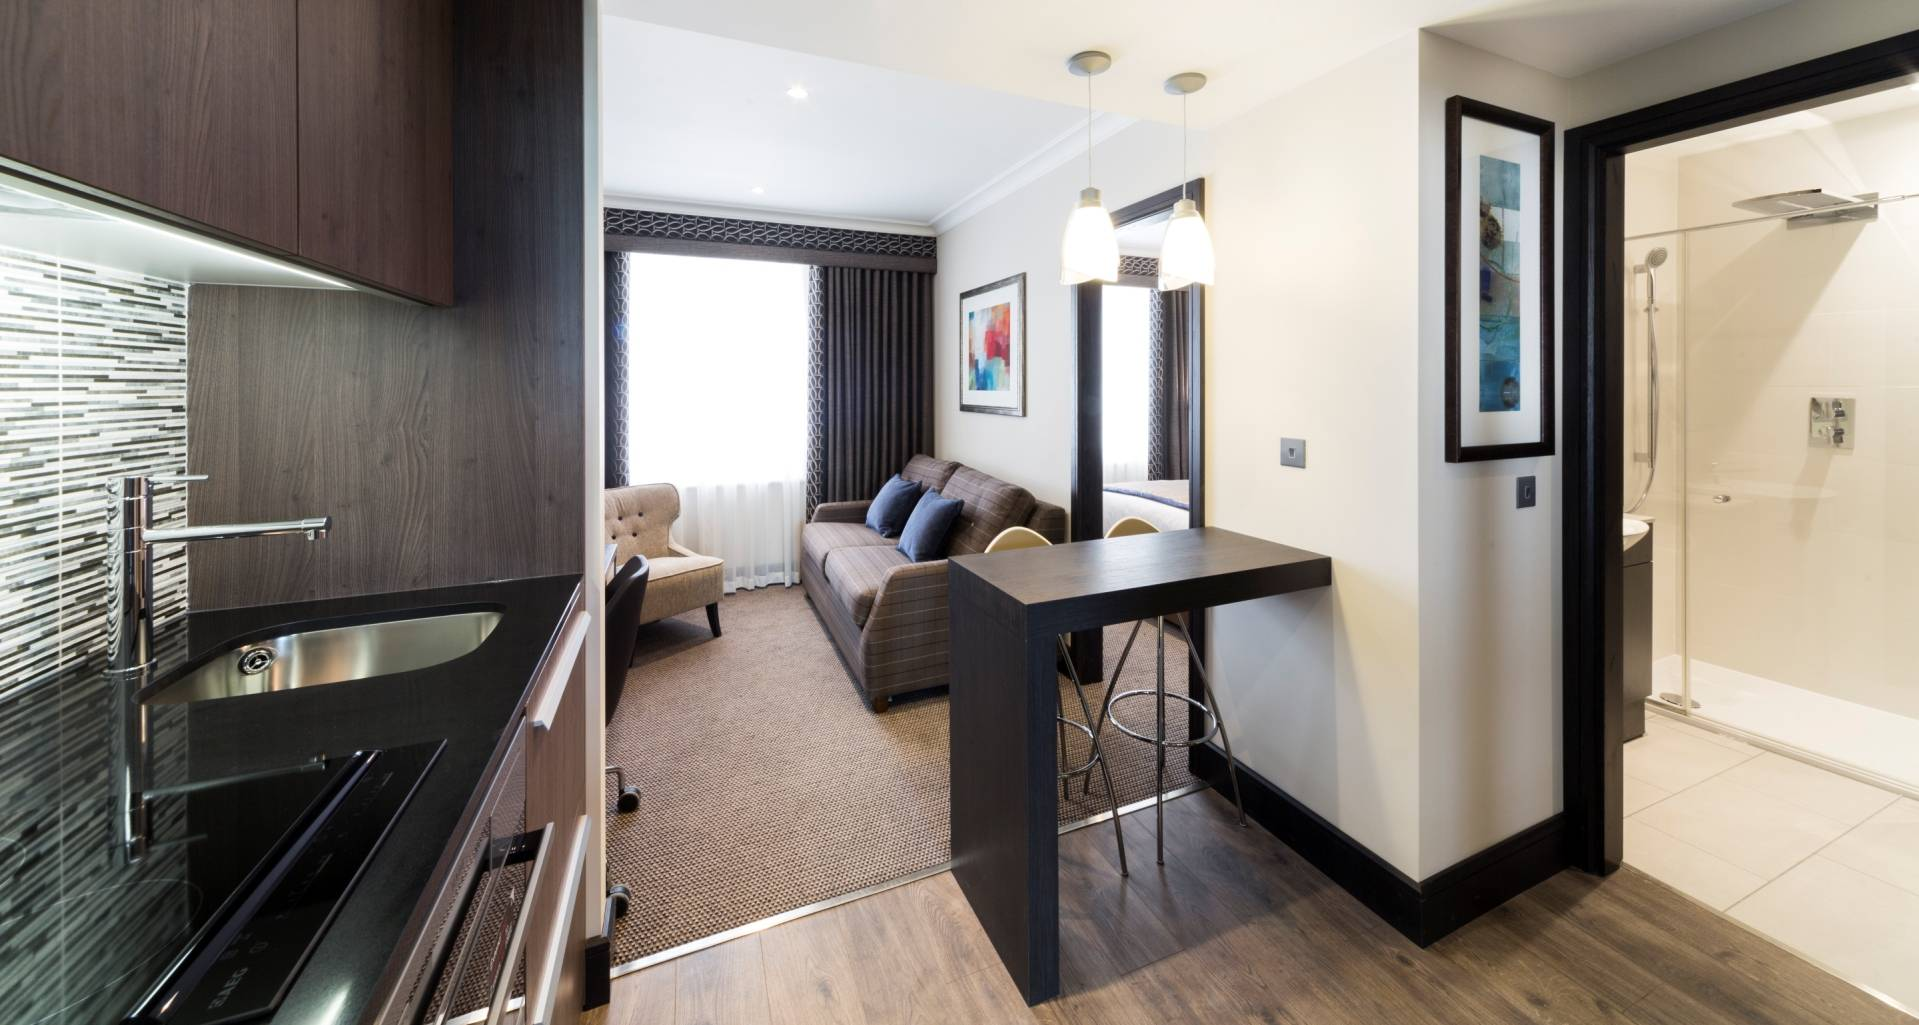 London Hotel Apartment Accommodation